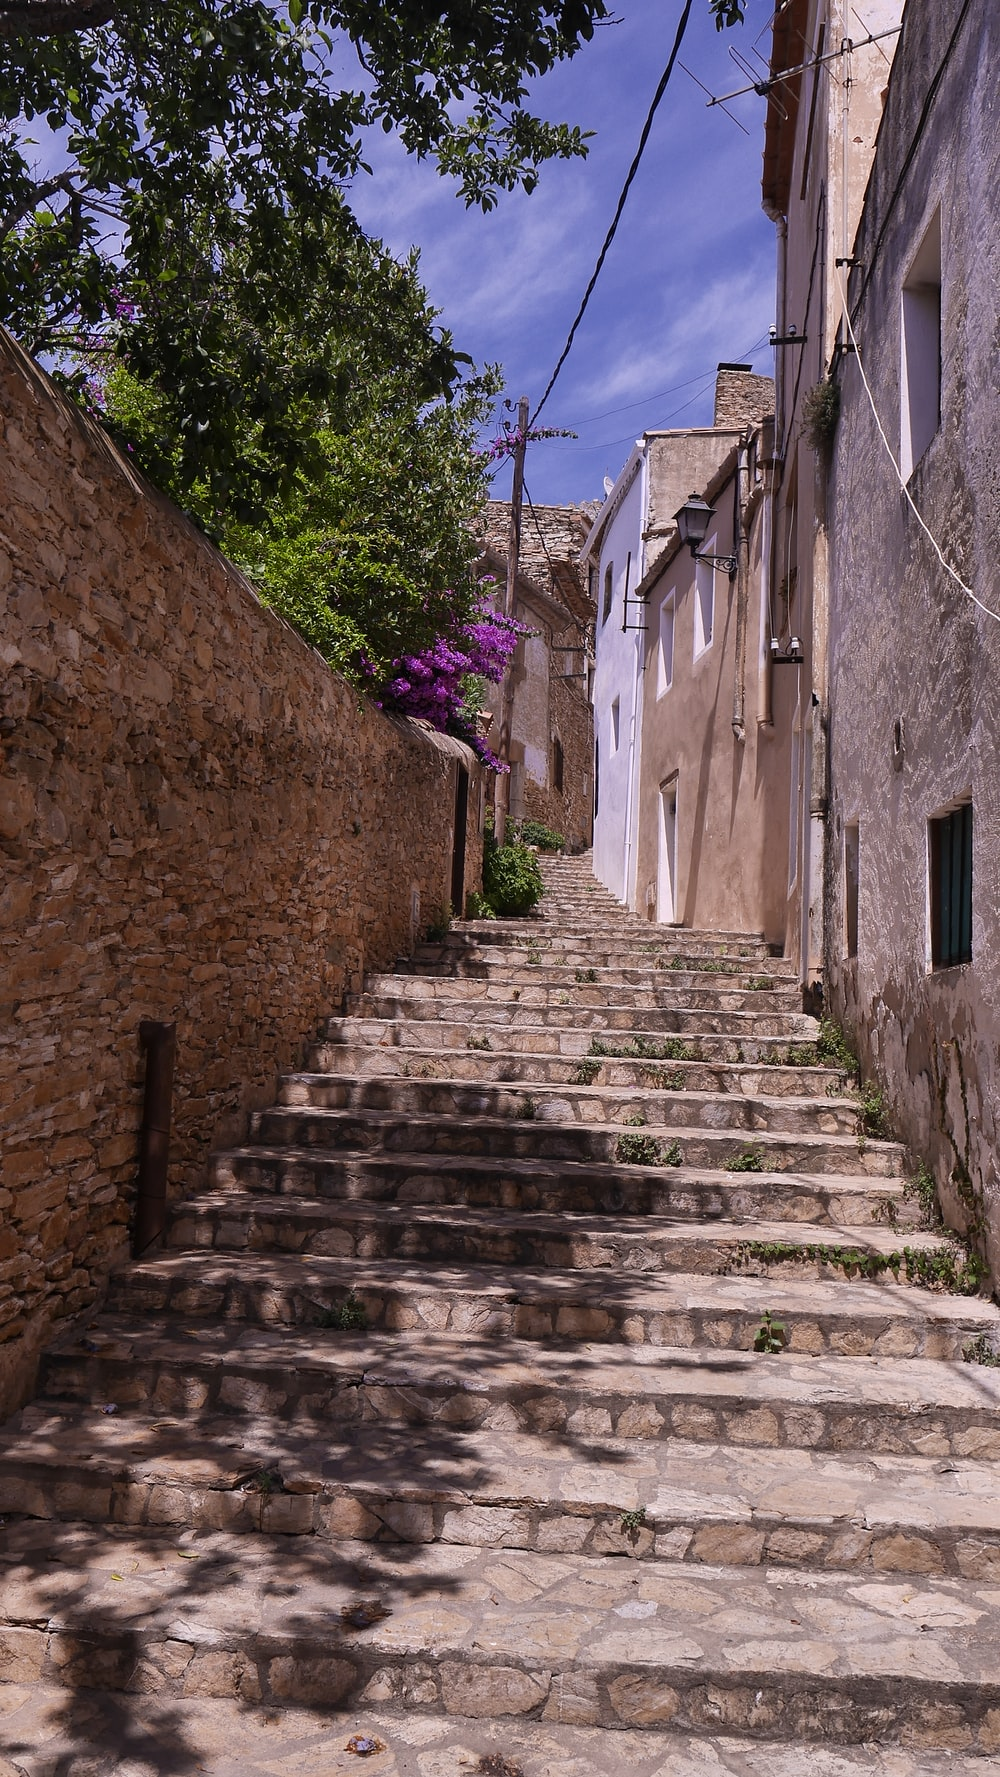 stairs beside purple flowers during daytime